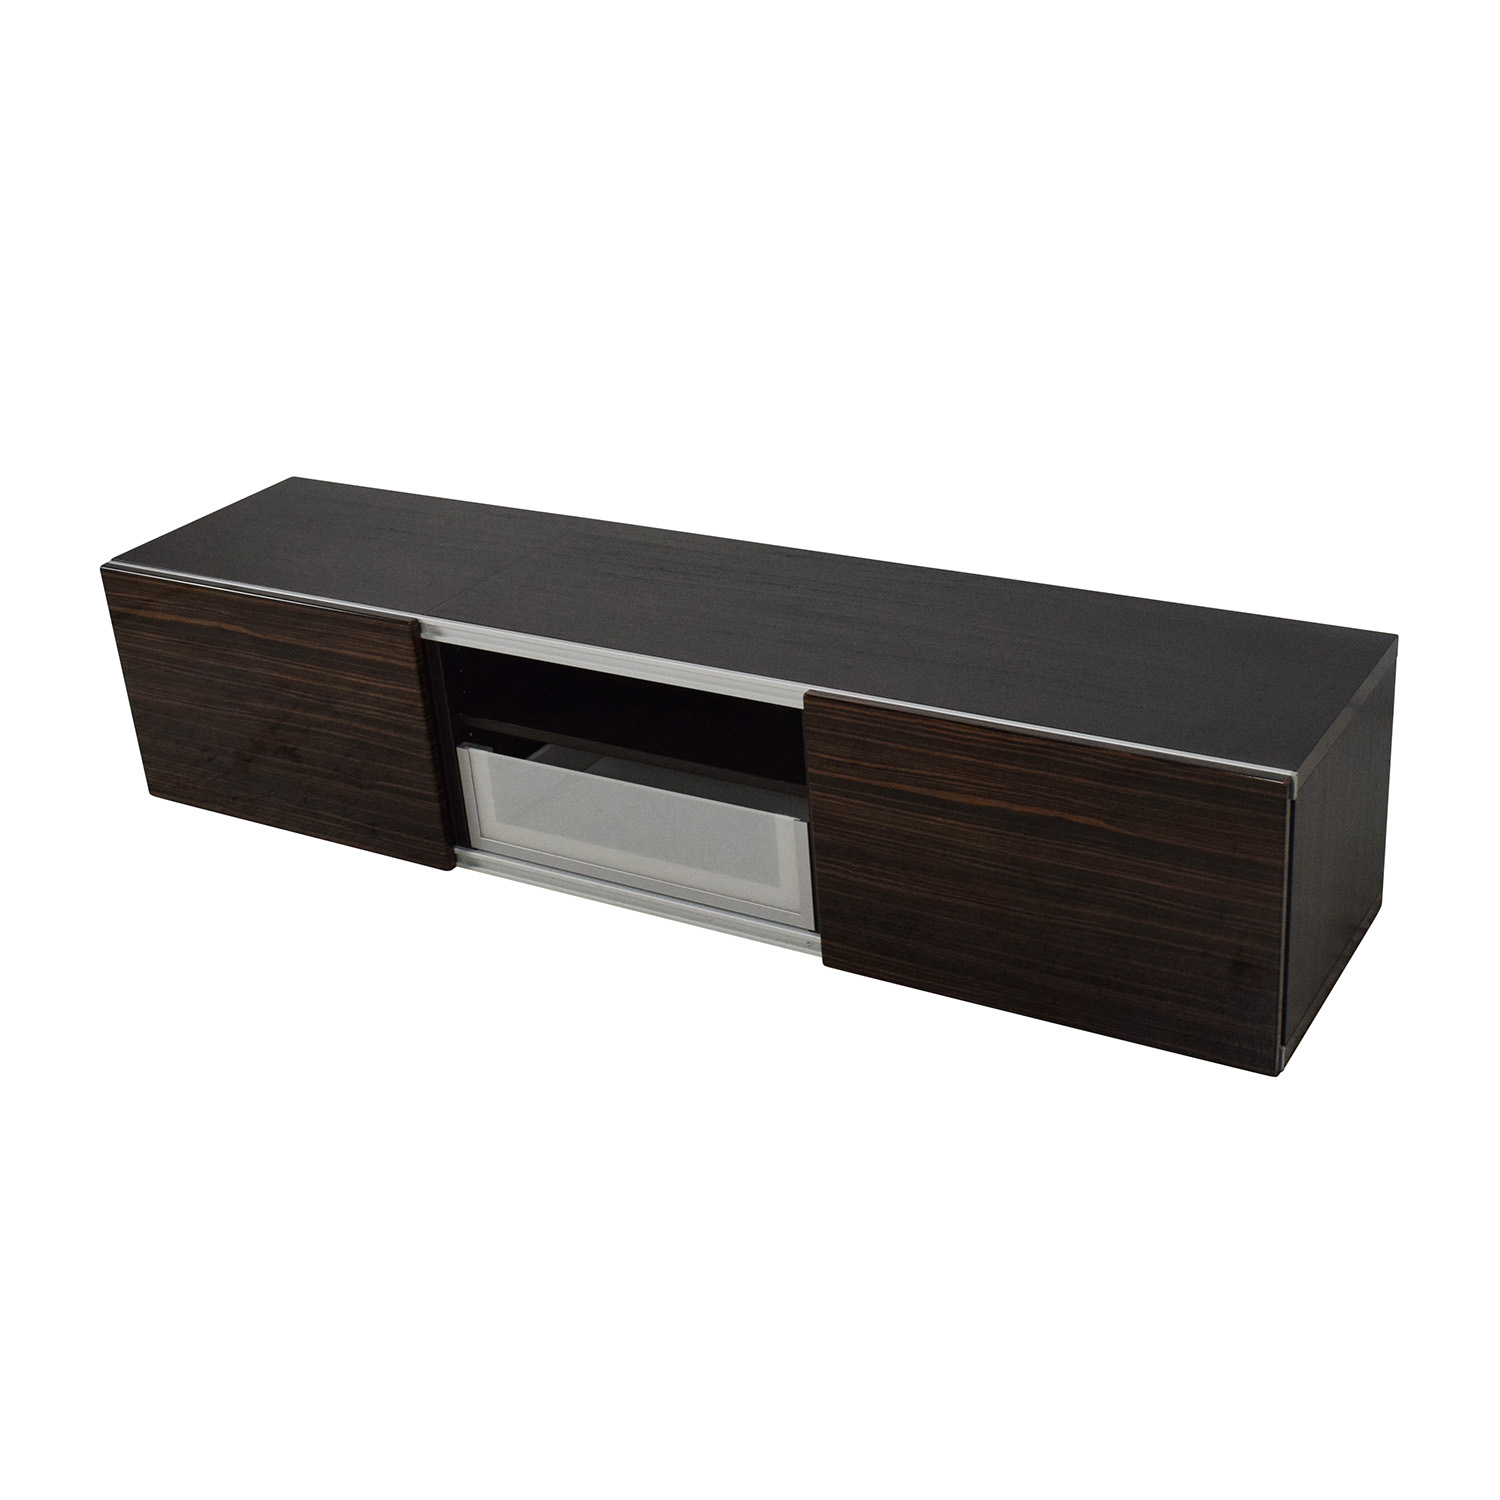 56 off ikea ikea media storage cabinet storage. Black Bedroom Furniture Sets. Home Design Ideas